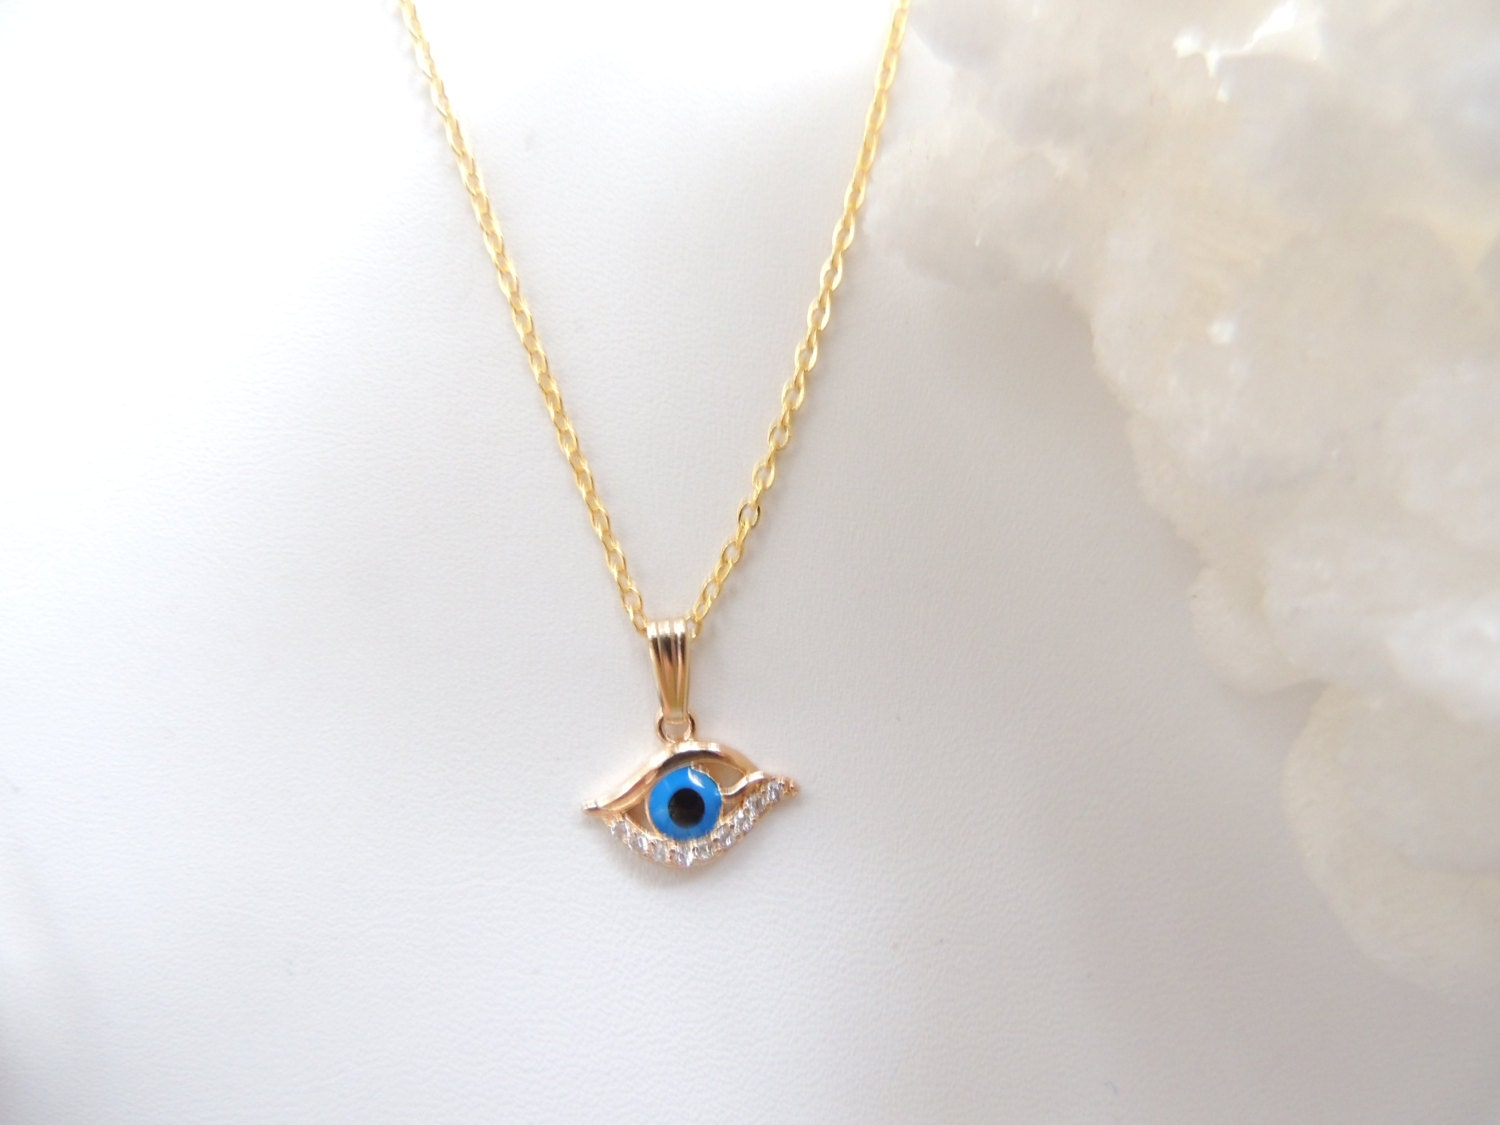 Evil eye necklace all seeing eye necklace pendant necklace zoom mozeypictures Gallery